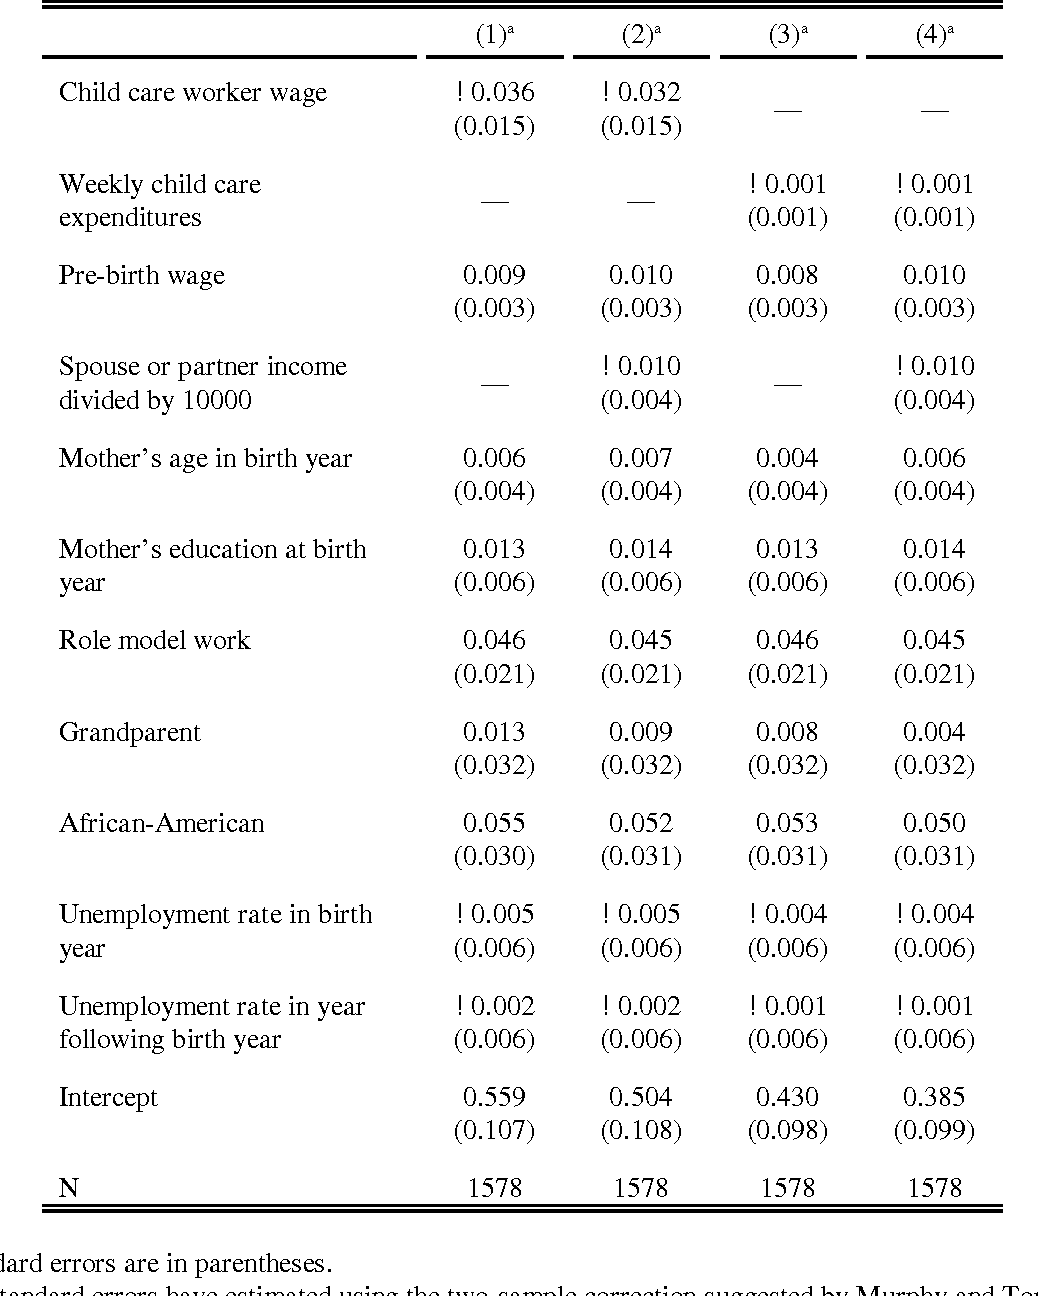 Table 3. OLS Estimates of the Labor Force Participation Model, Controlling for Spouse or Partner Income.